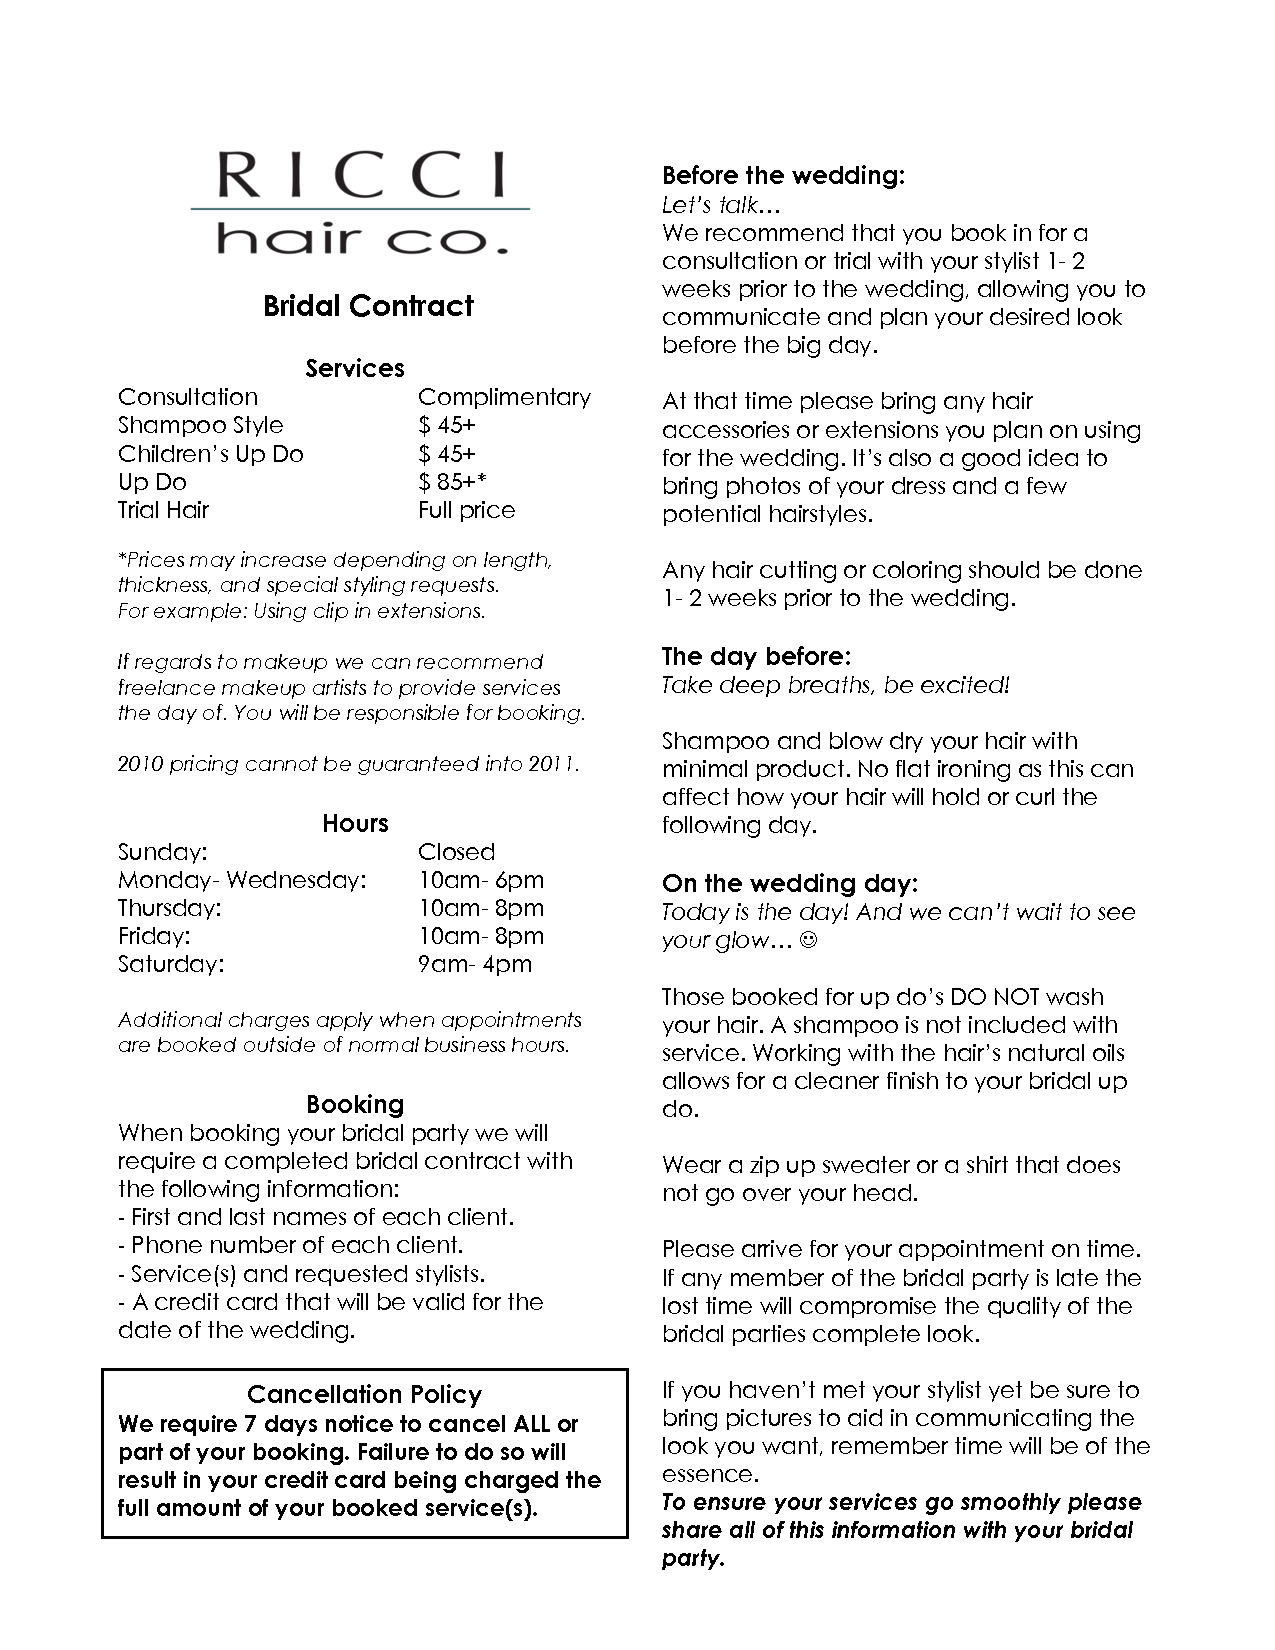 bridalhaircotract | bridal hair stylist contract | business